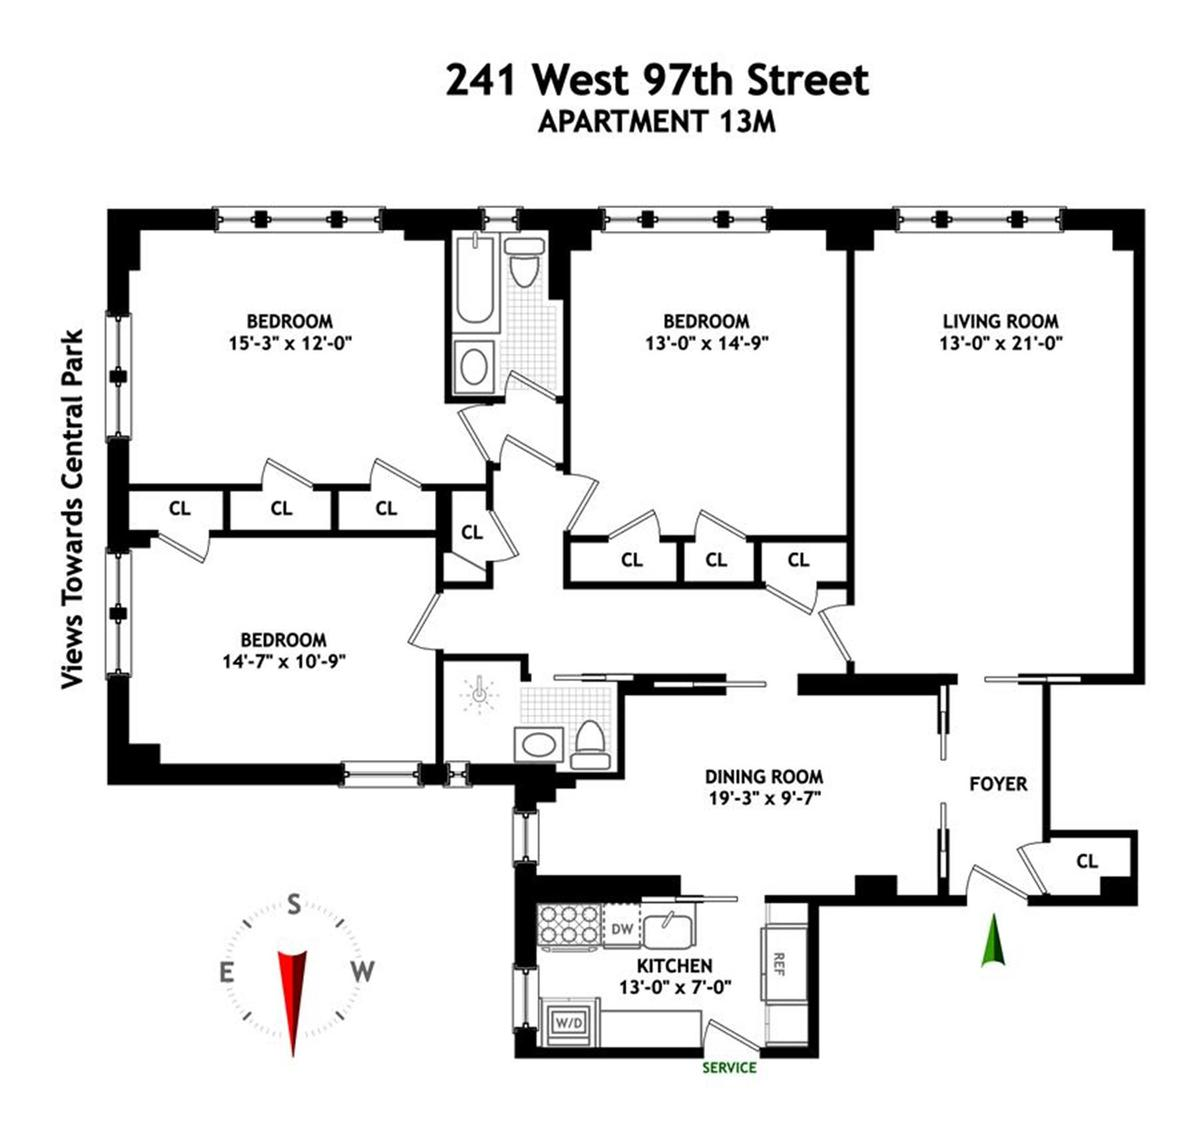 241 West 97th Street #13M in Upper West Side, Manhattan